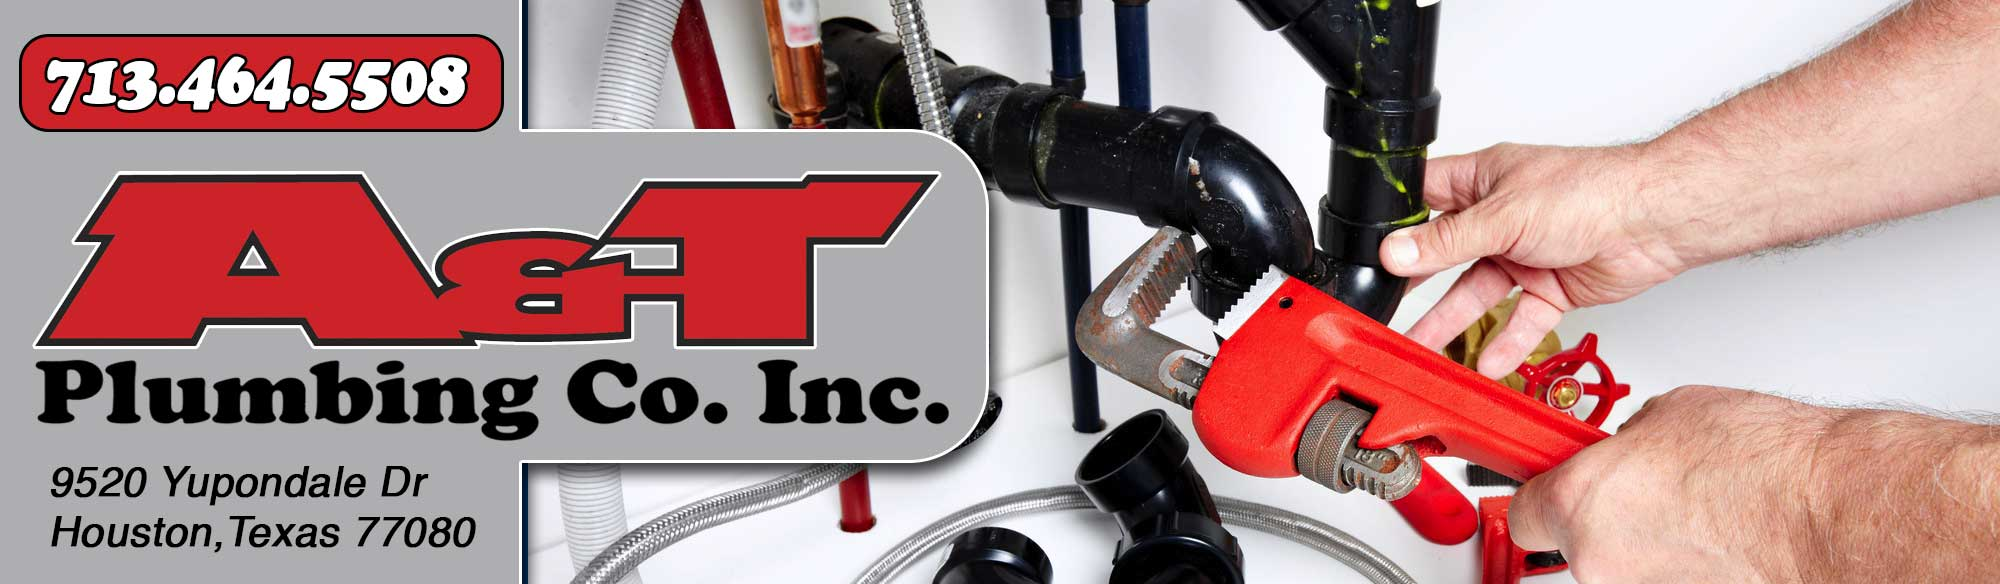 Residential Plumbing Services in the Houston Area